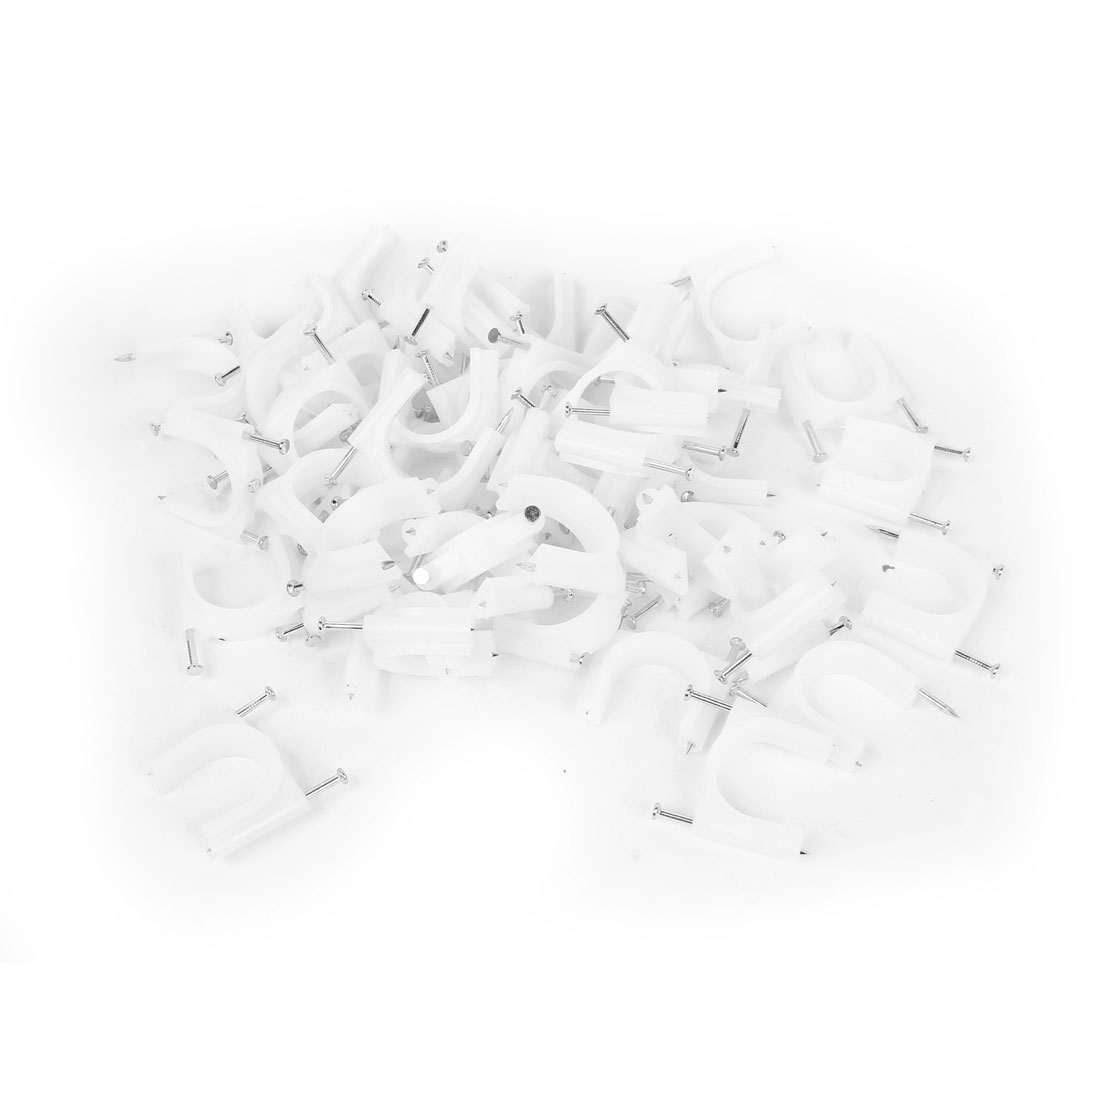 100 Pcs White Plastic 32mm Diameter Electric Cable Circle Nail Clips